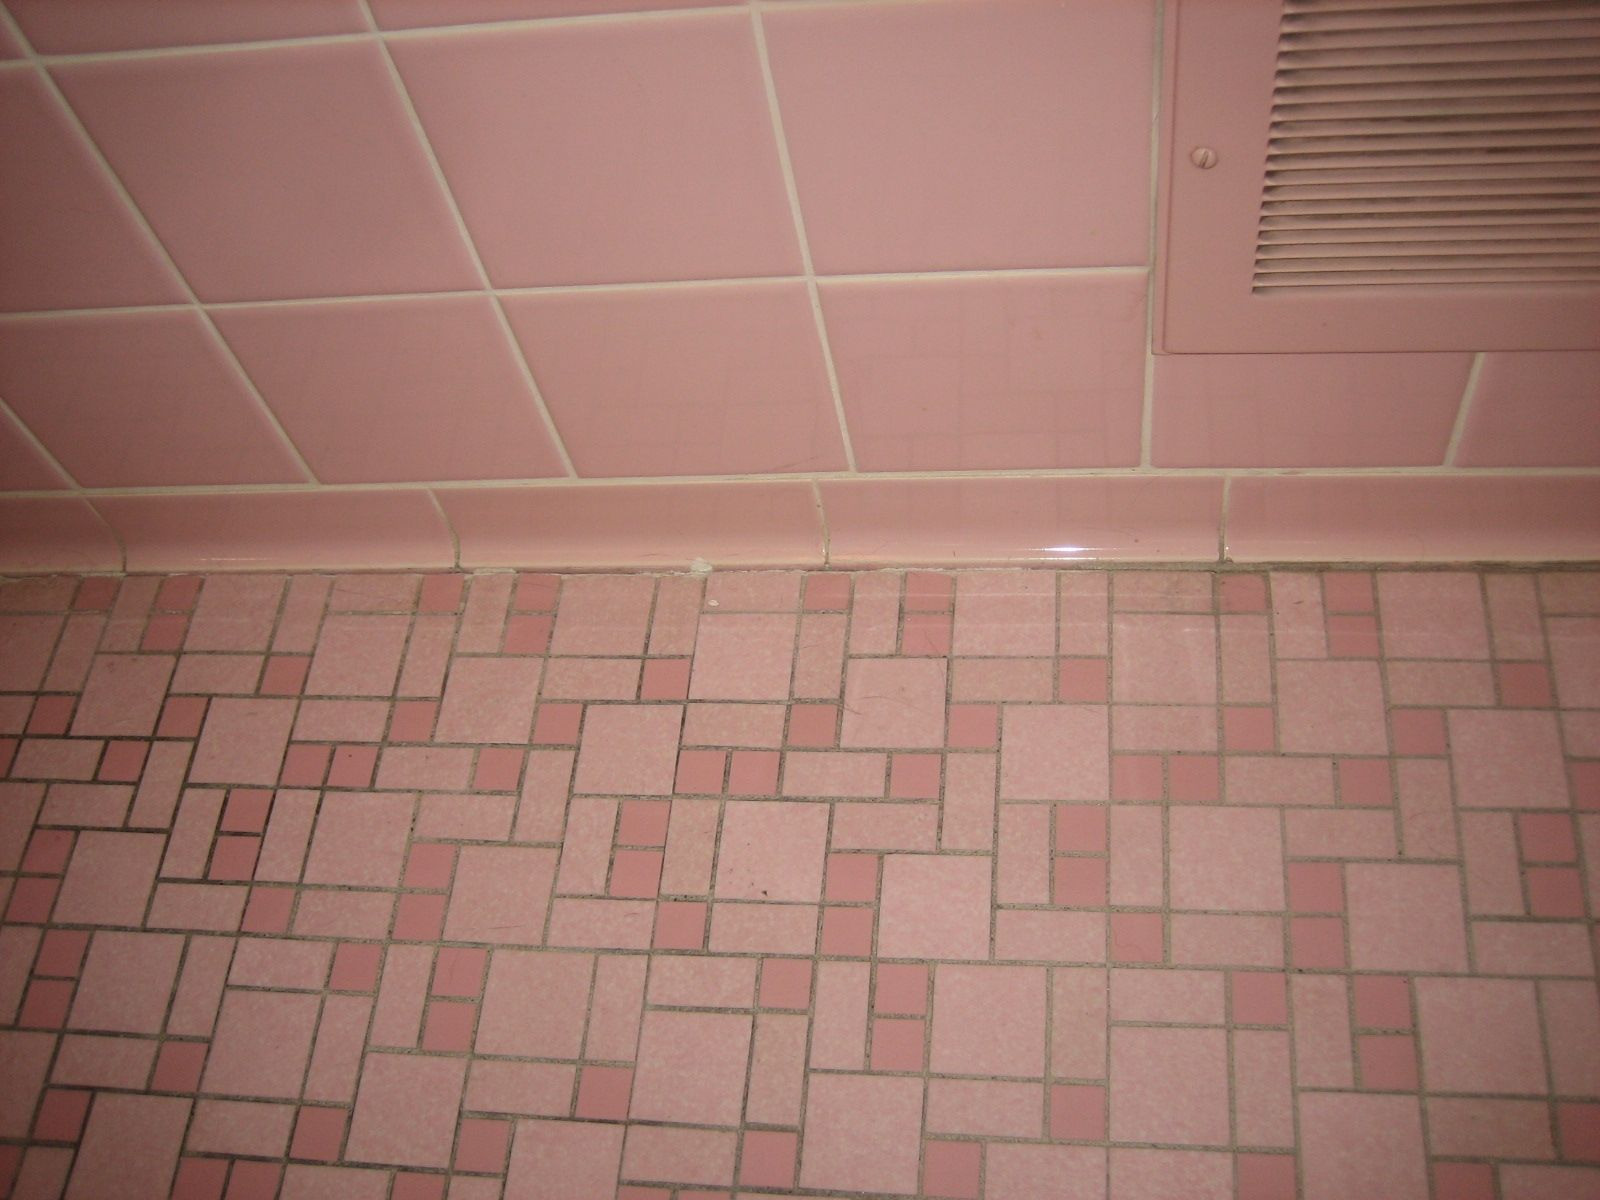 Unusual 1200 X 600 Floor Tiles Tall 13X13 Ceramic Tile Solid 2 By 2 Ceiling Tiles 2 Hour Fire Rated Ceiling Tiles Young 2 X 2 Ceramic Tile Soft2 X 4 Subway Tile Regrout Old Bathroom Floor Tile | Bathroom Exclusiv | Pinterest ..